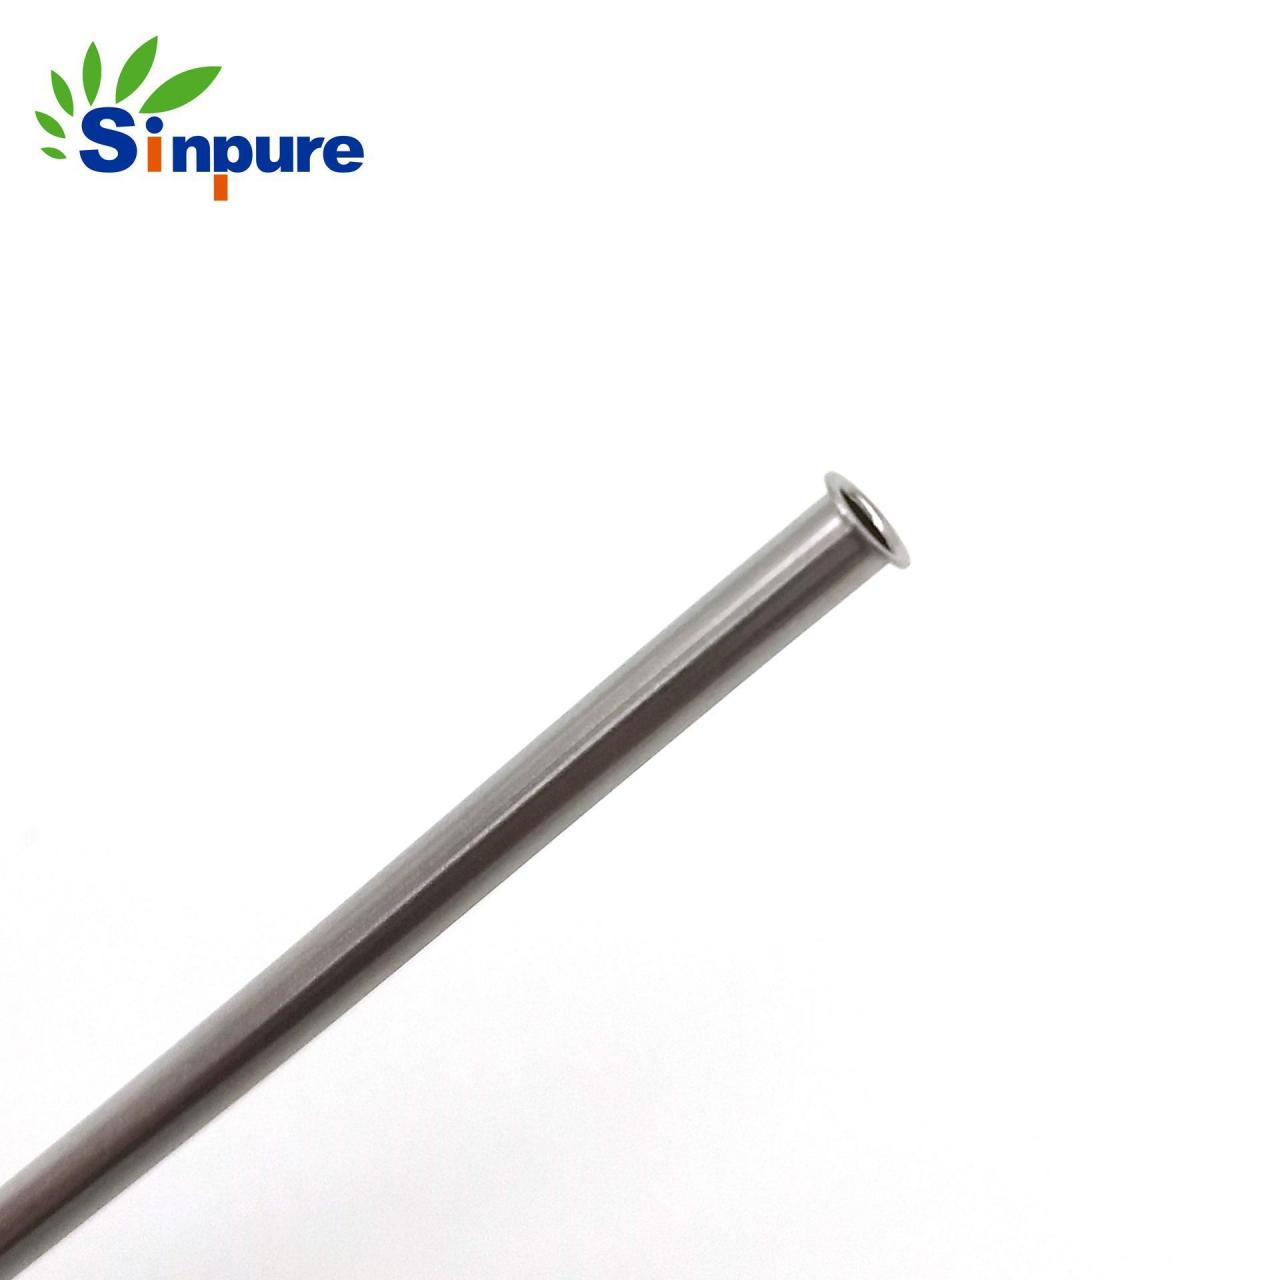 Wholesale Sinpure Stainless steel 316 needle cannula with flared end tip from china suppliers